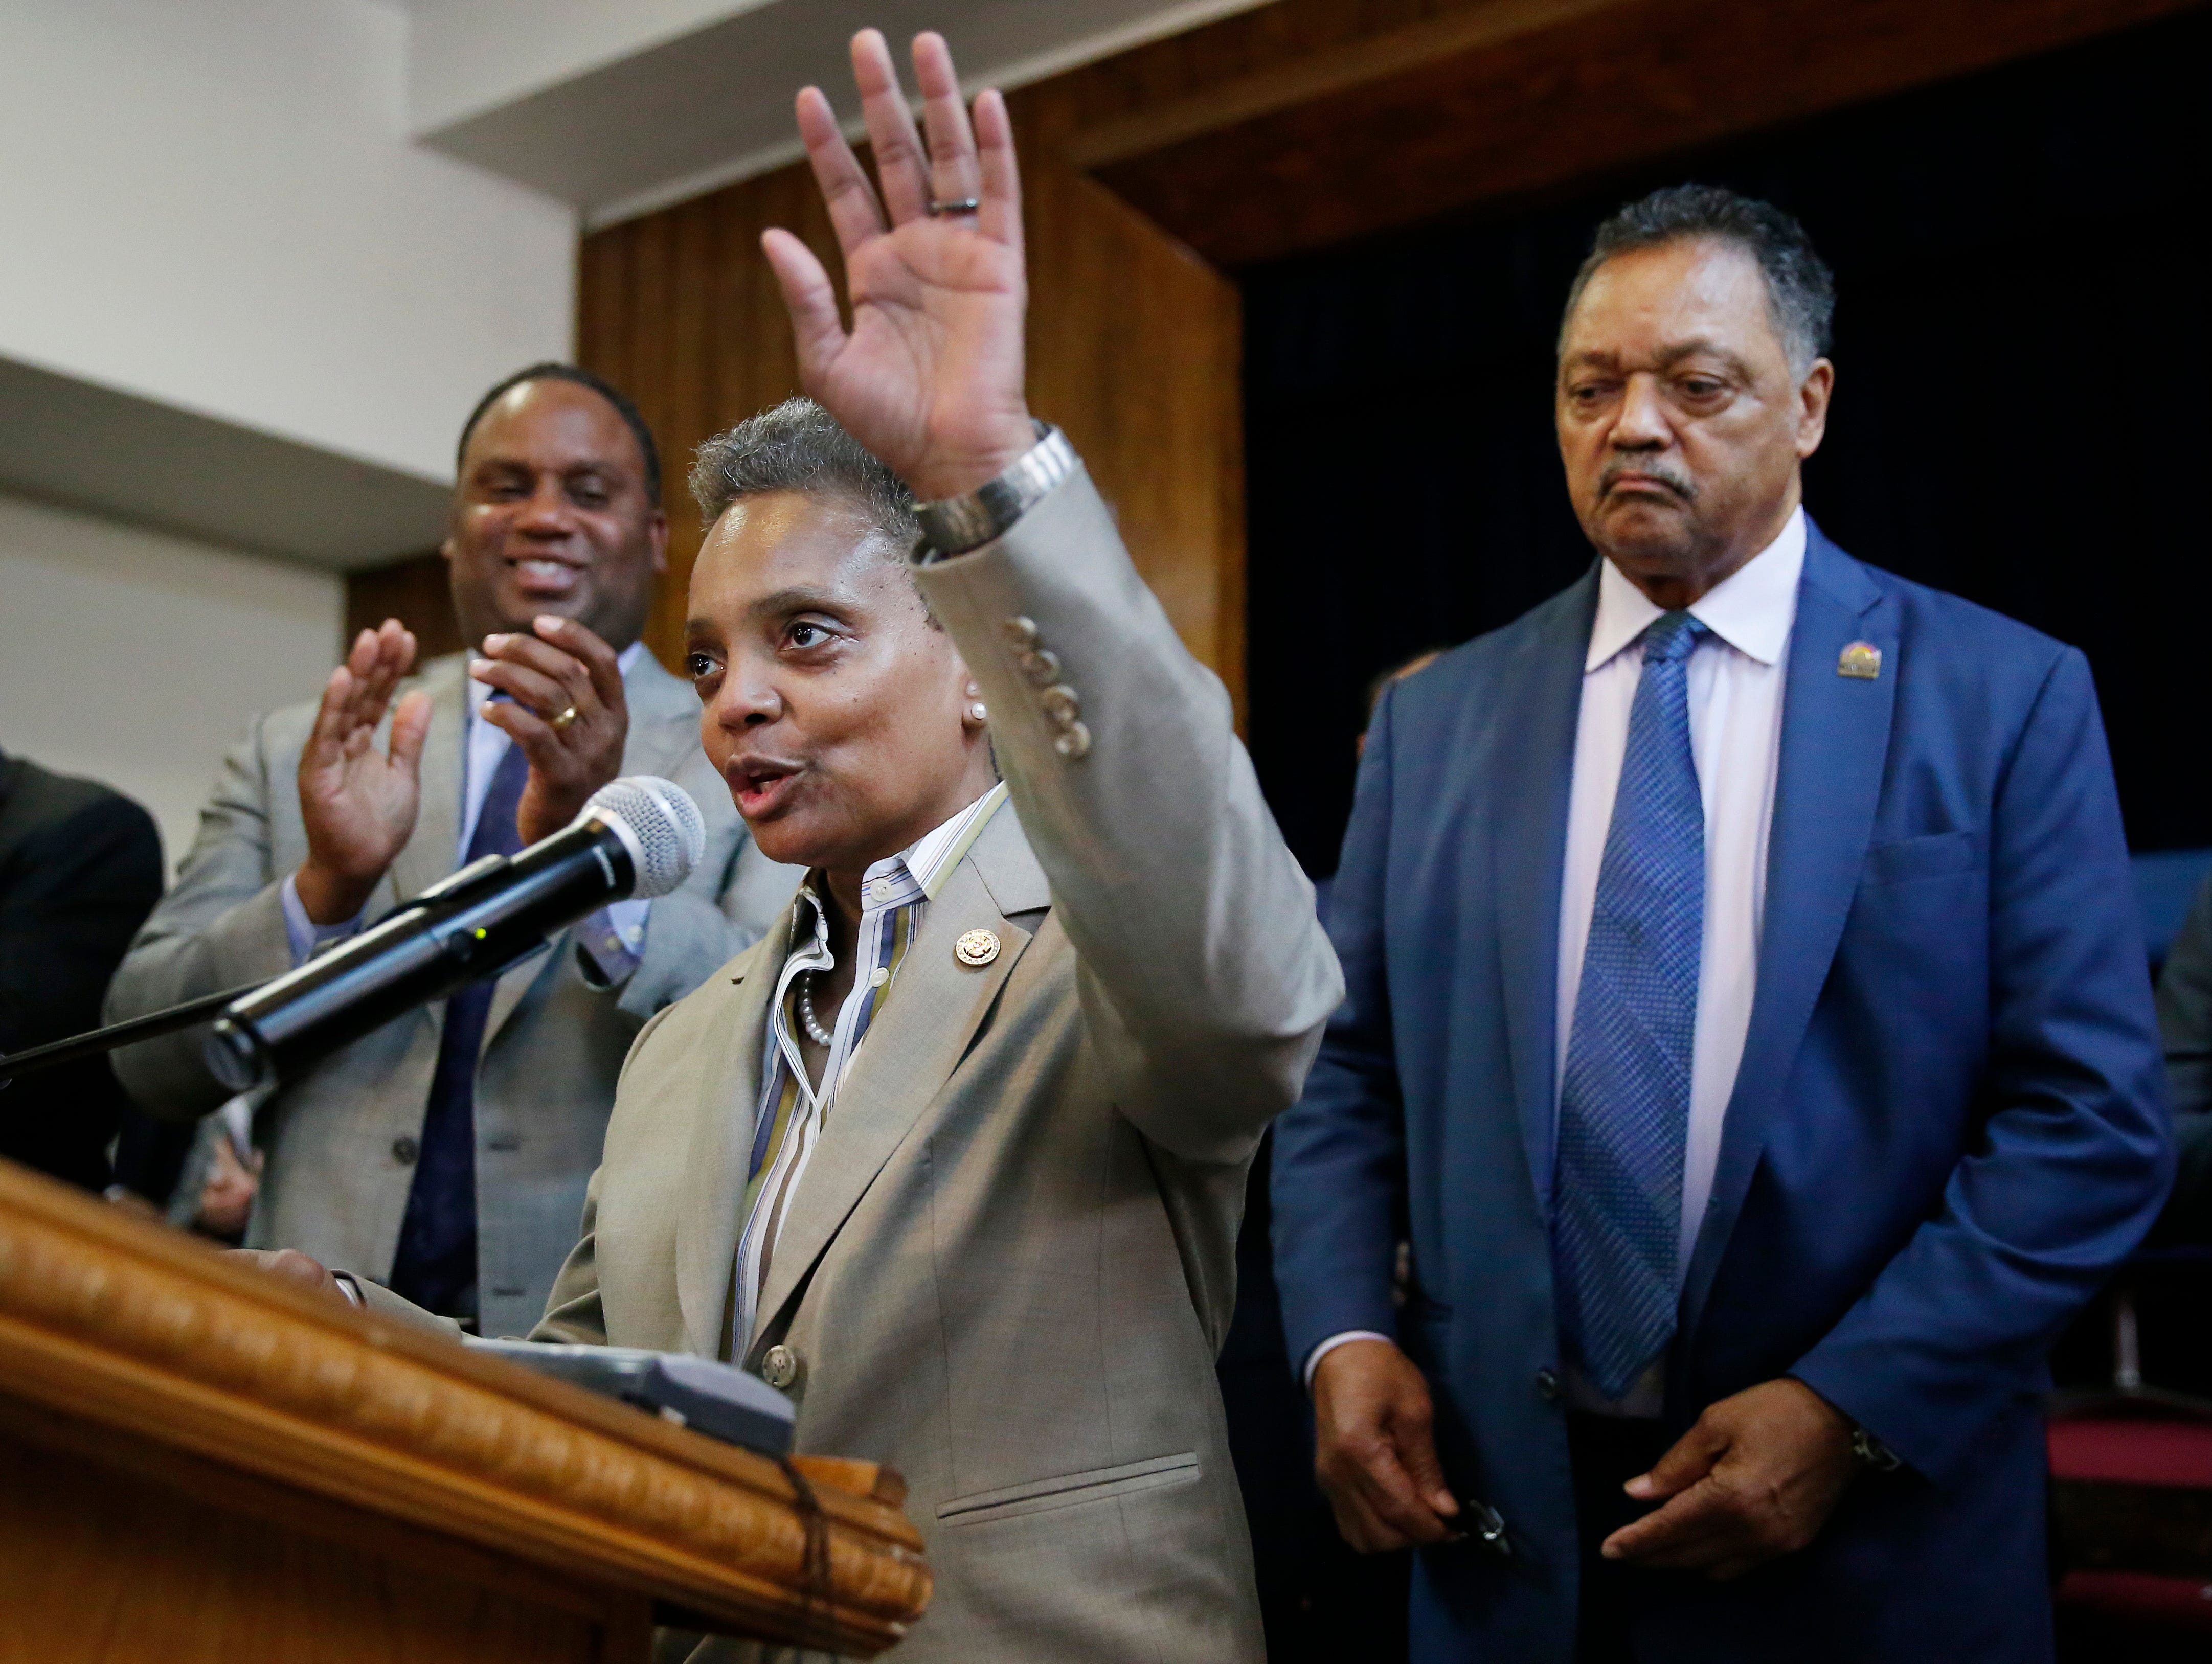 Chicago Mayor-elect Lori Lightfoot, speaks as Rev. Jesse Jackson, right, looks on during a press conference at the Rainbow PUSH organization on April 3, 2019, in Chicago. Lightfoot, a former federal prosecutor who'd never been elected to public office, defeated Cook County Board President and longtime City Council member Toni Preckwinkle.